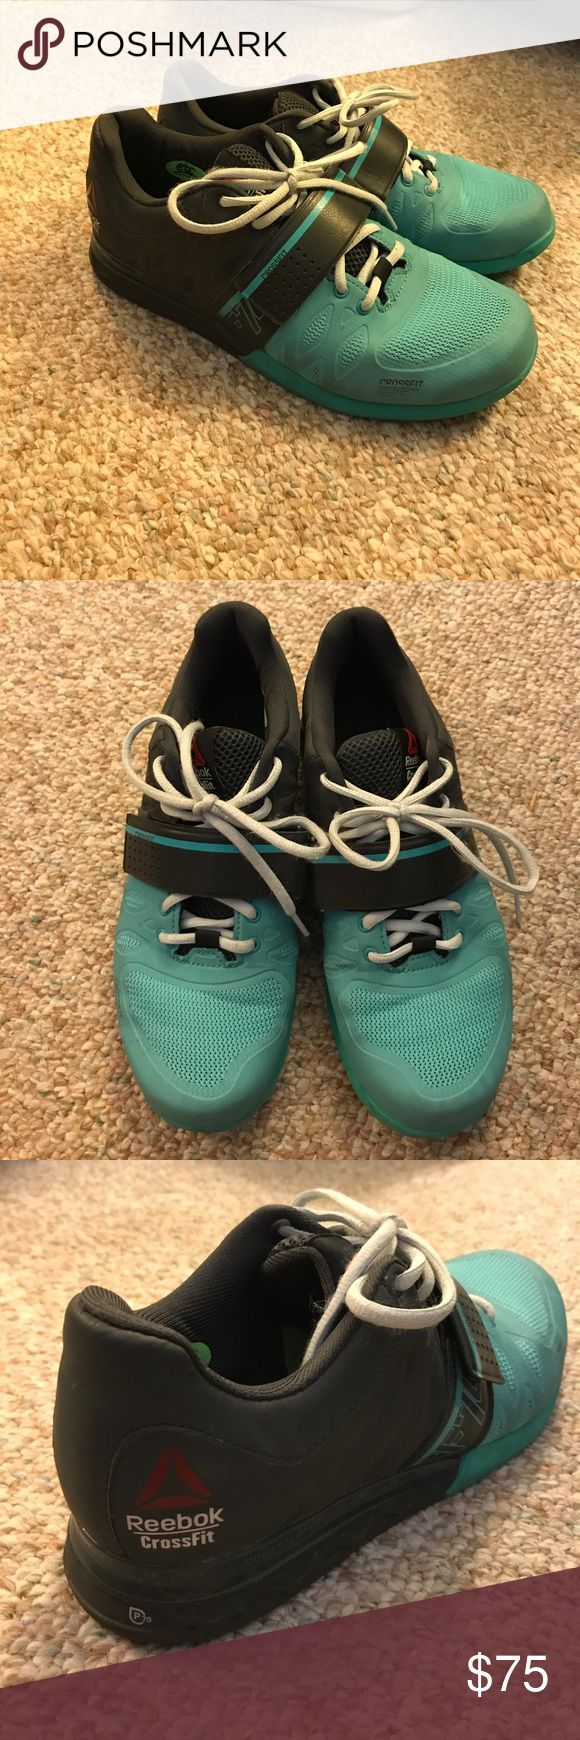 Reebok Crossfit weightlifting shoes. Reebok crossfit weightlifting shoes. Slightly used but in great condition. Reebok Shoes Athletic Shoes